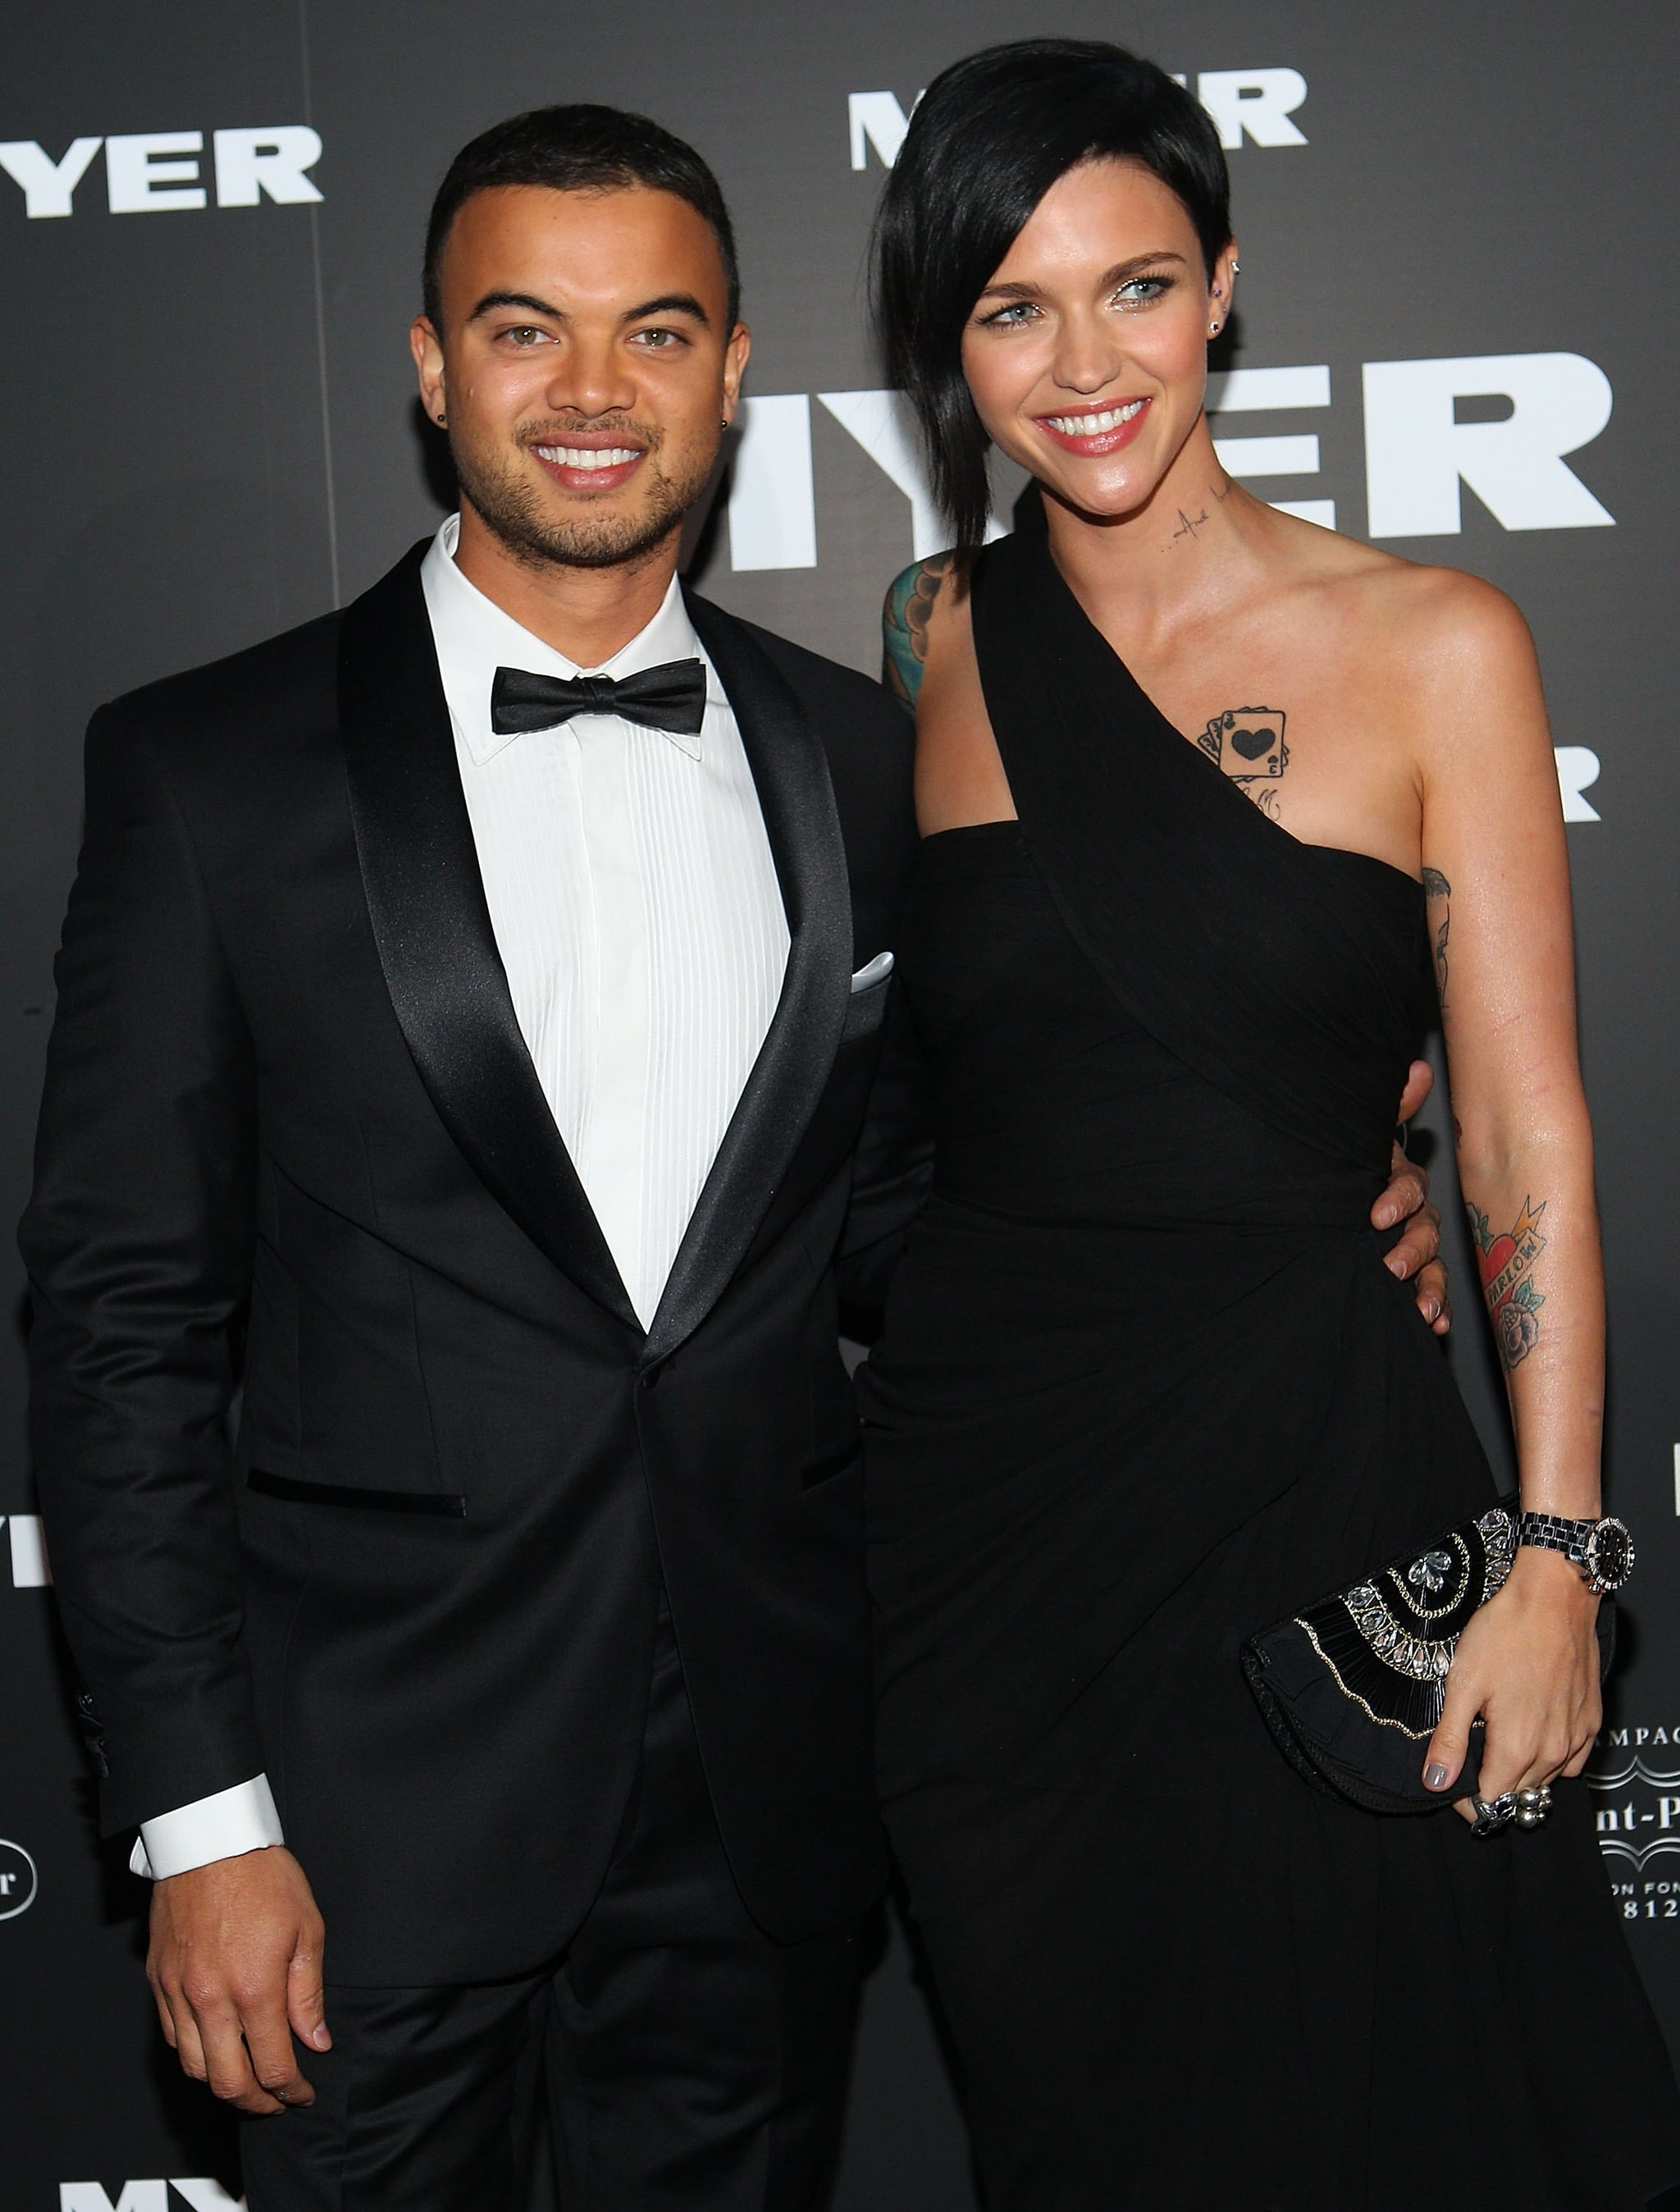 Guy Sebastian and Ruby Rose